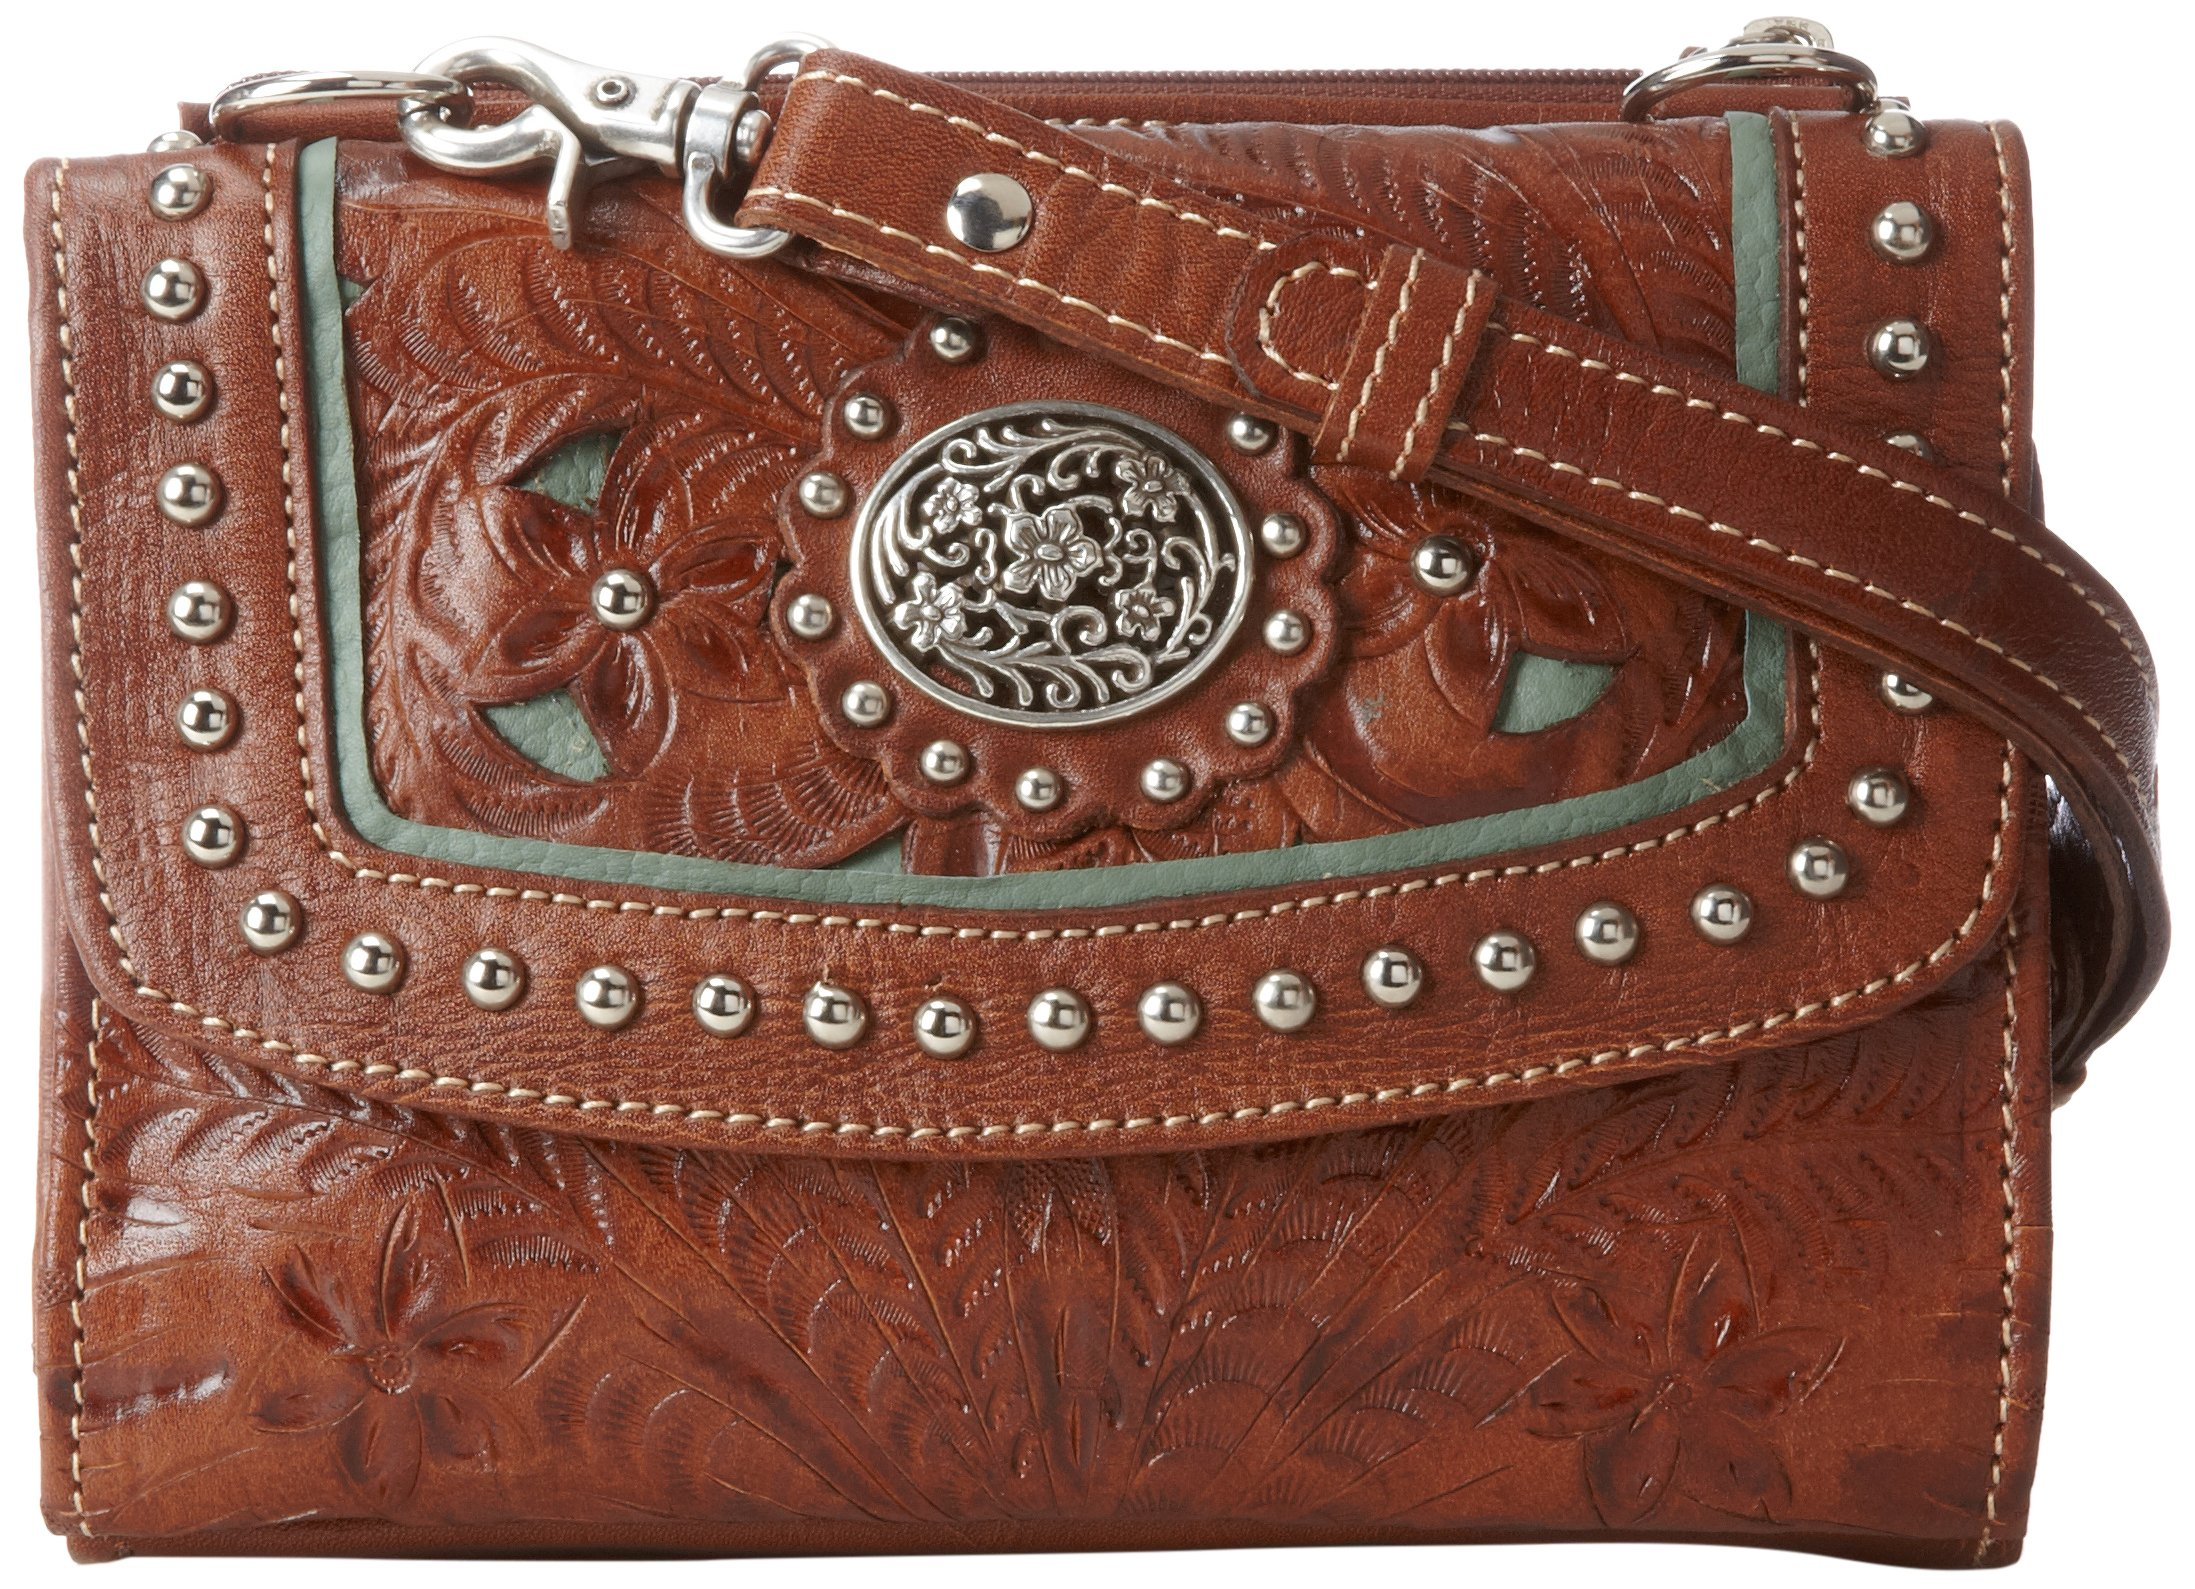 American West Texas 2 Step Grab-and-Go Combination Bag Shoulder Bag Mocha/Turquoise One Size by American West